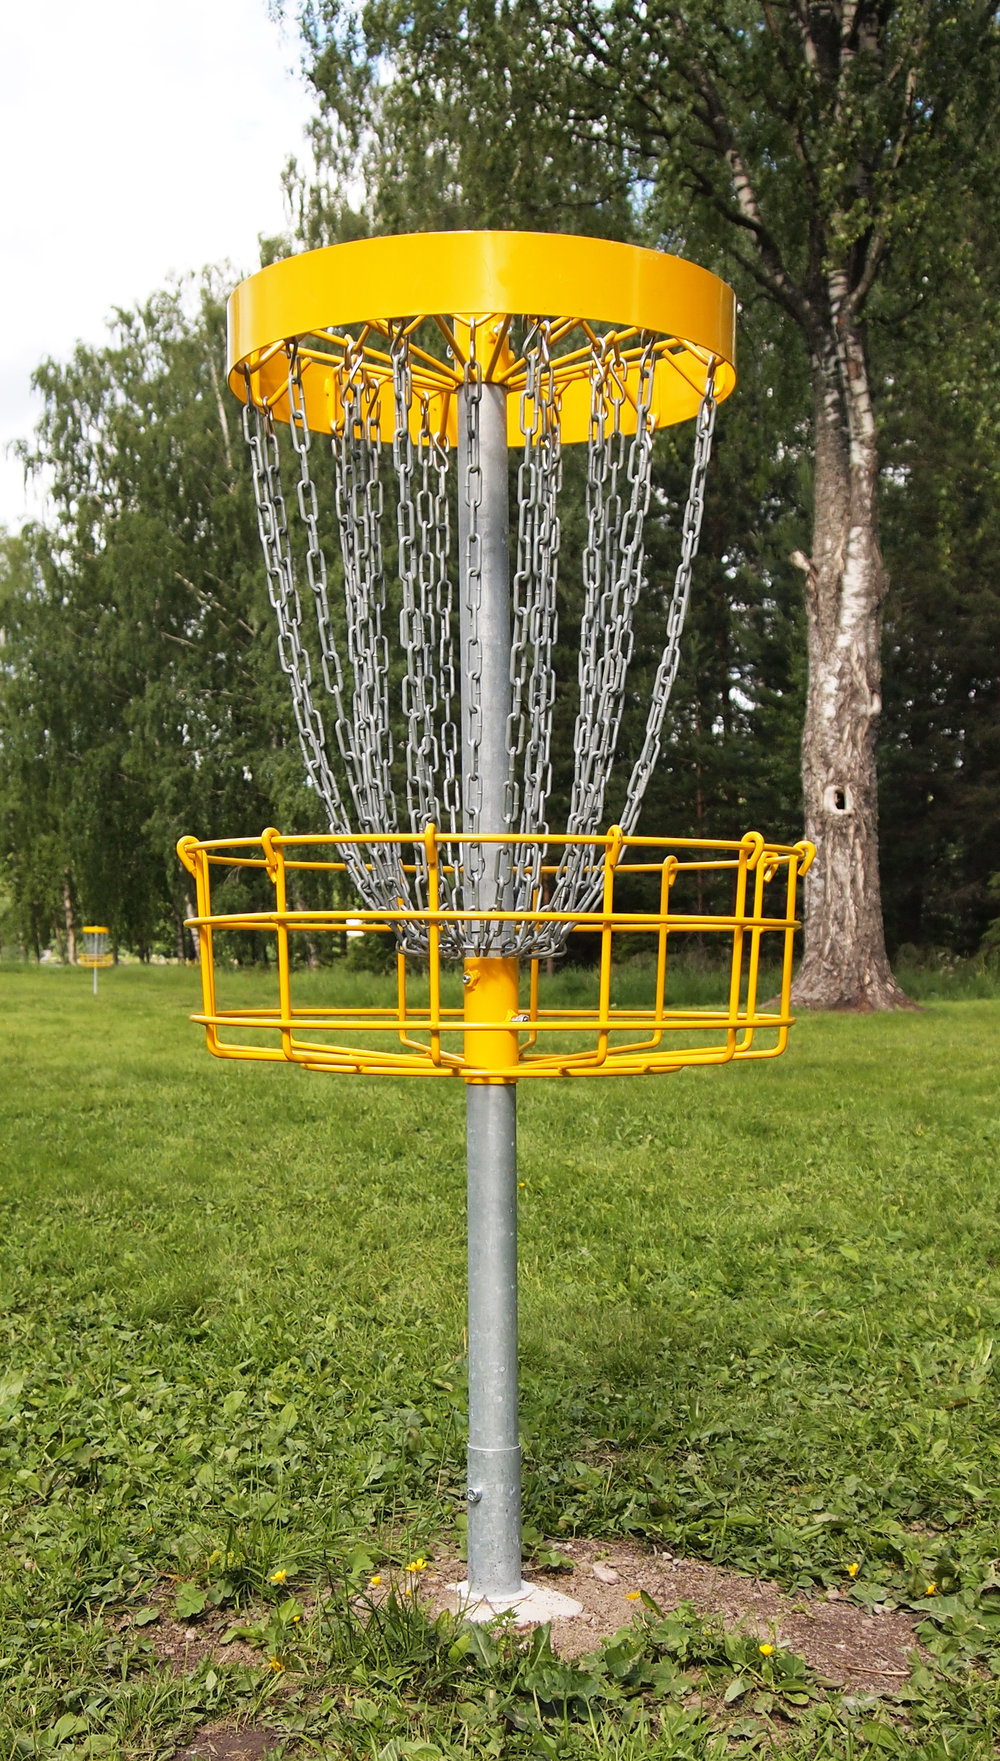 Disc golf basket. By Tiia Monto (Own work) [CC BY-SA 3.0 (http://creativecommons.org/licenses/by-sa/3.0)], via Wikimedia Commons